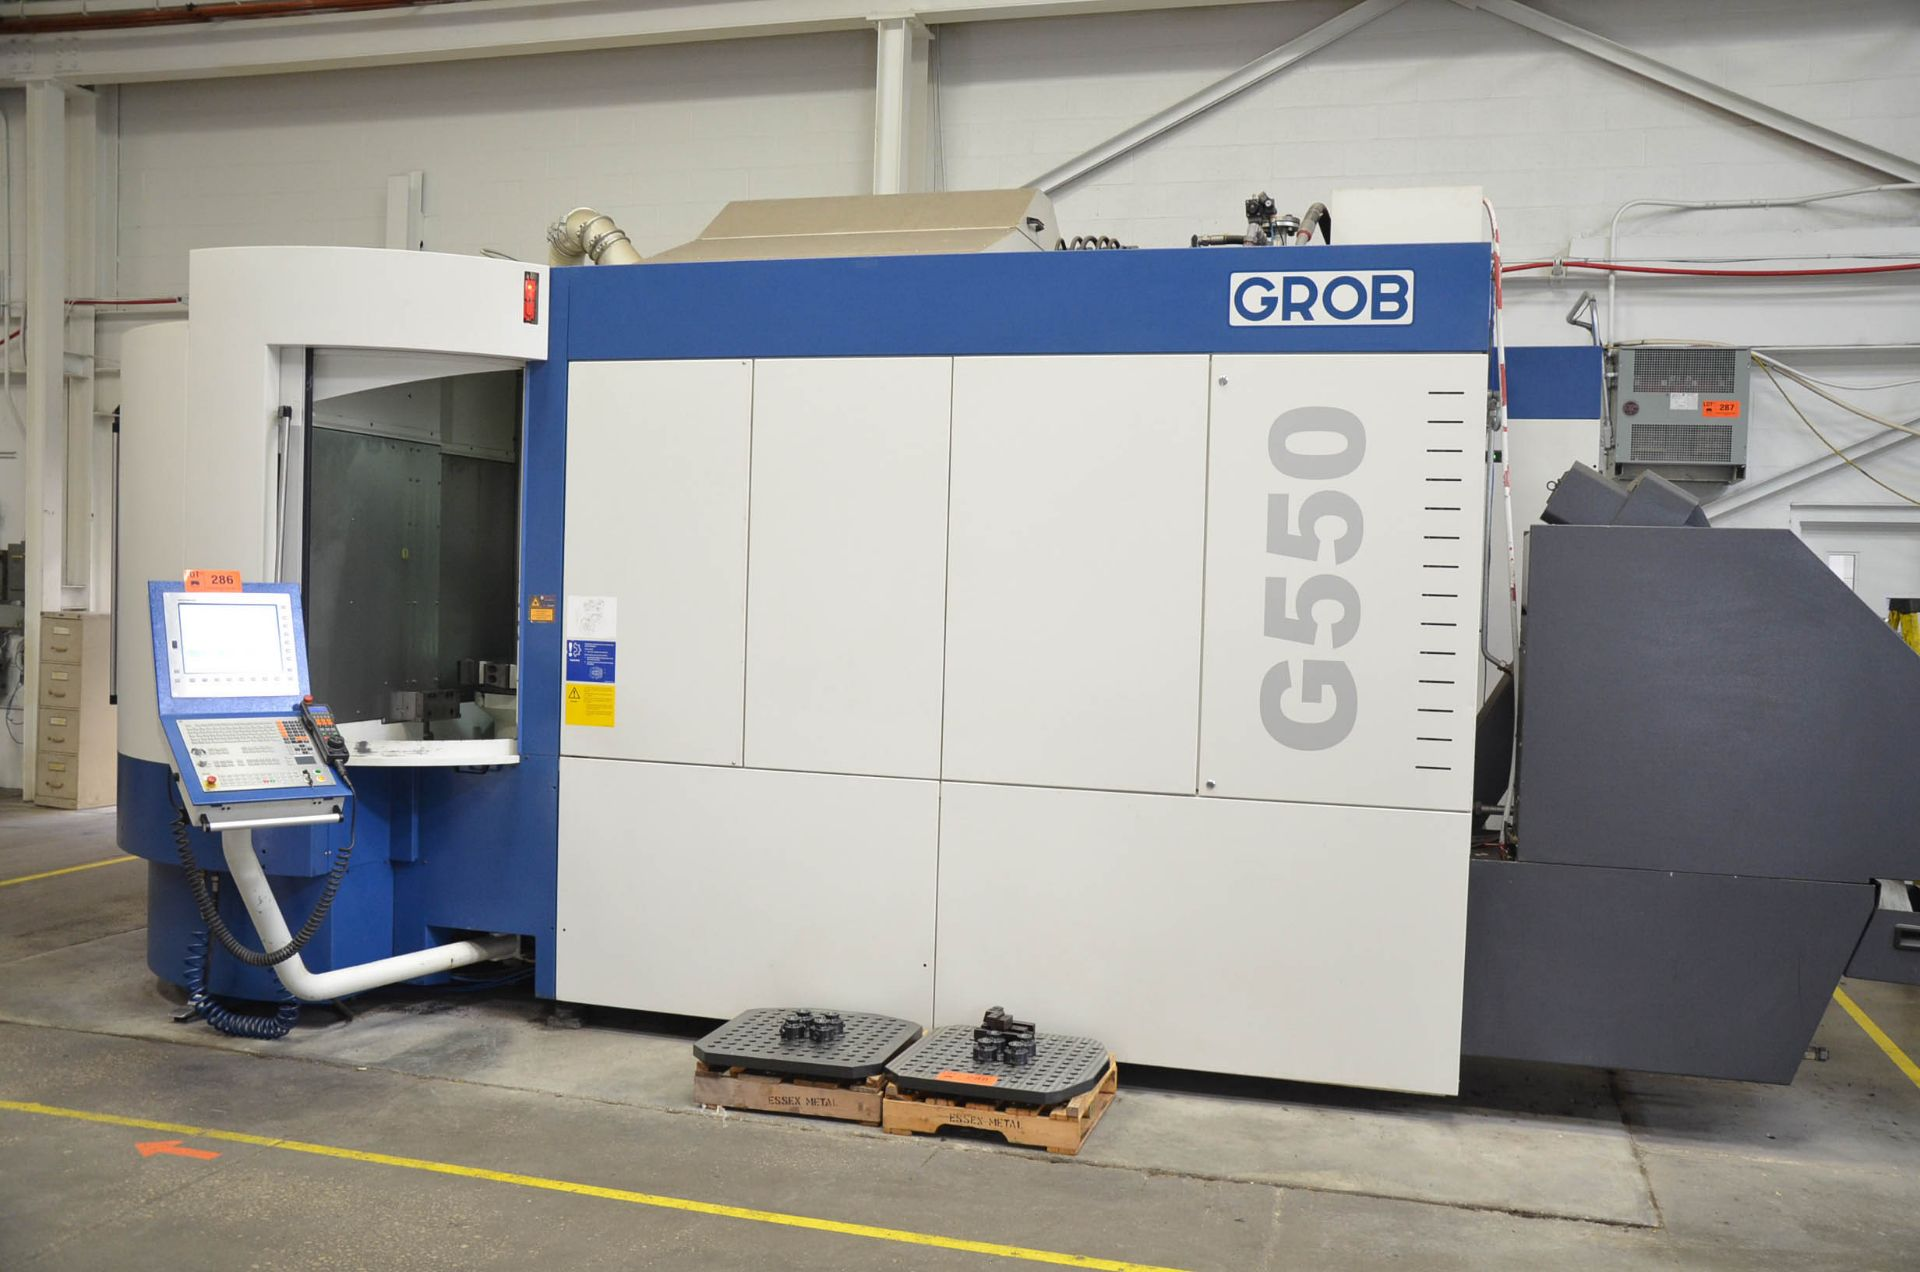 GROB (2014) G550 5-AXIS TWIN PALLET CNC MACHINING CENTER WITH HEIDENHAIN ITNC 530 CNC CONTROL, 24. - Image 2 of 13